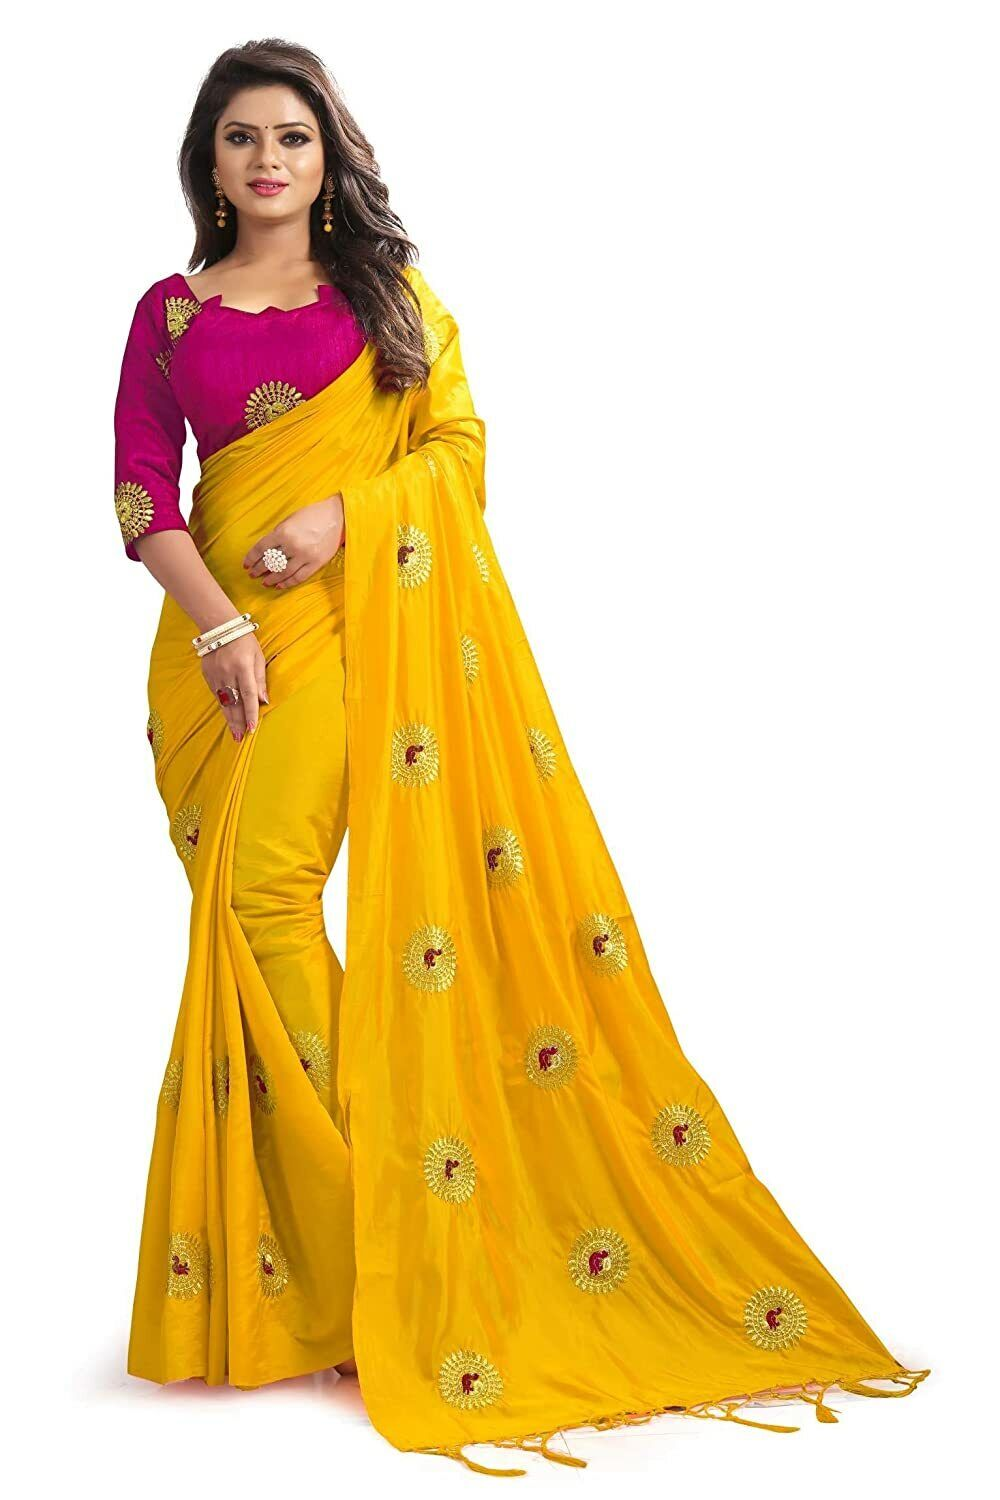 Indian Women's Embroidered Paper Silk Yellow Saree With Blouse Piece Free Shippi